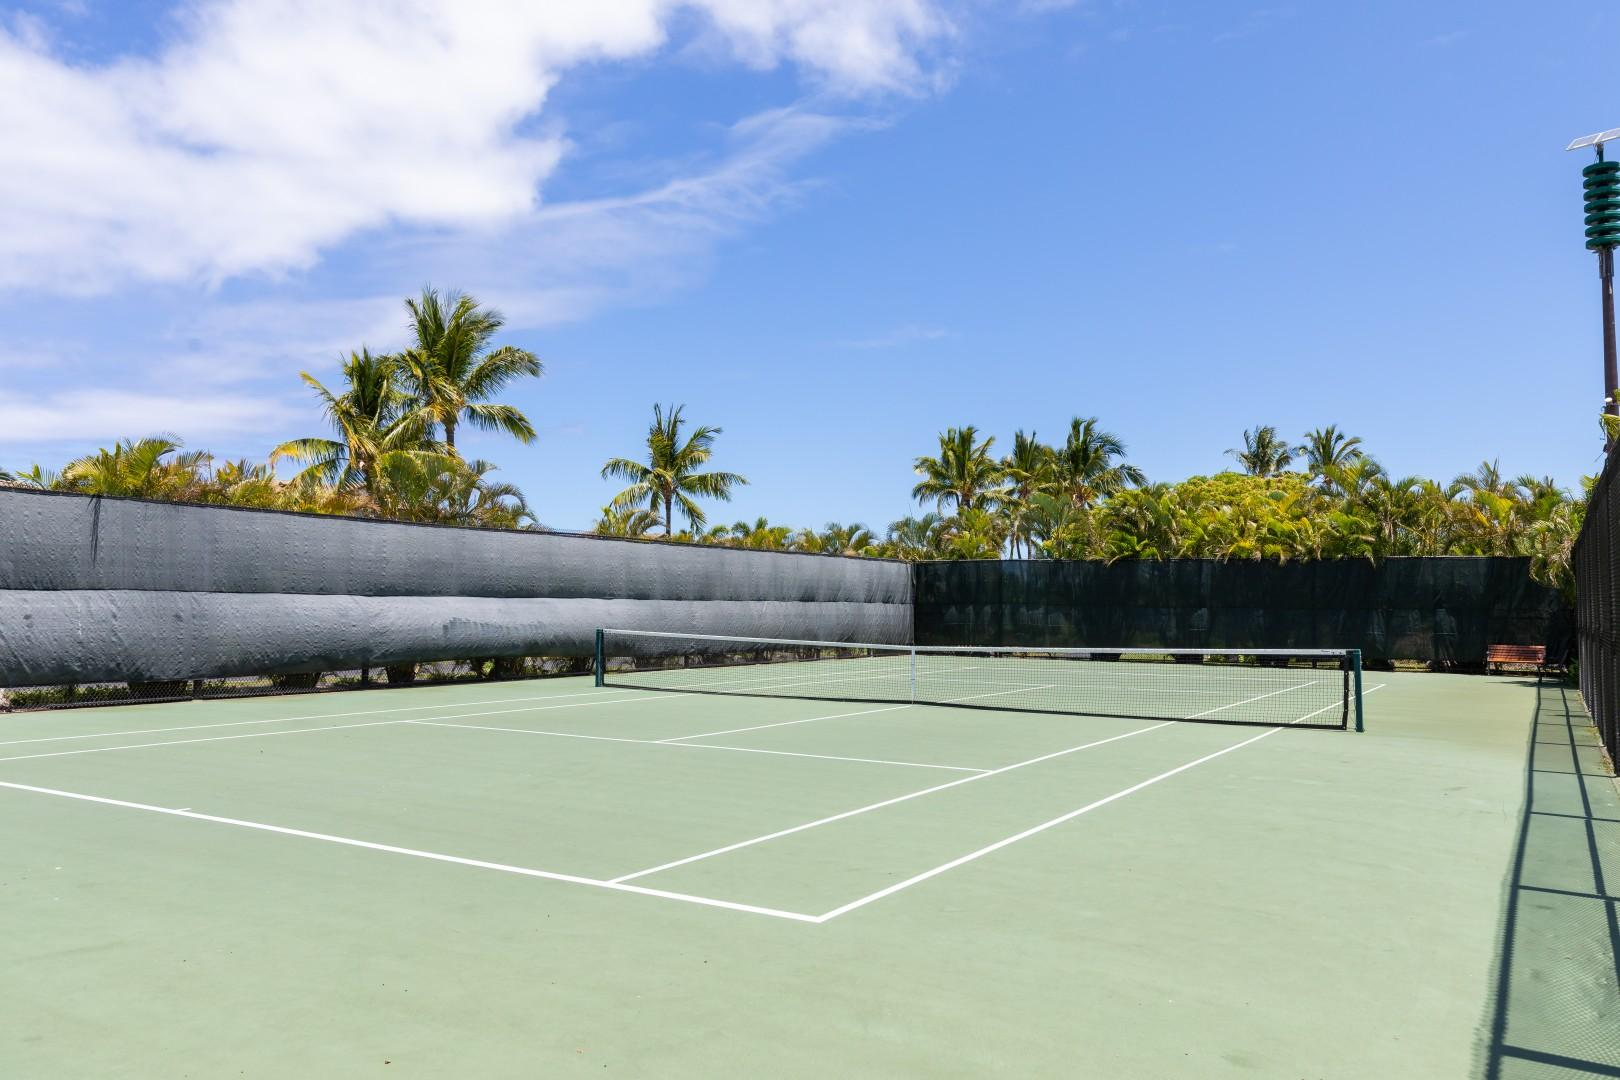 Bring your tennis outfit and gear and enjoy a rally on the complimentary tennis courts.